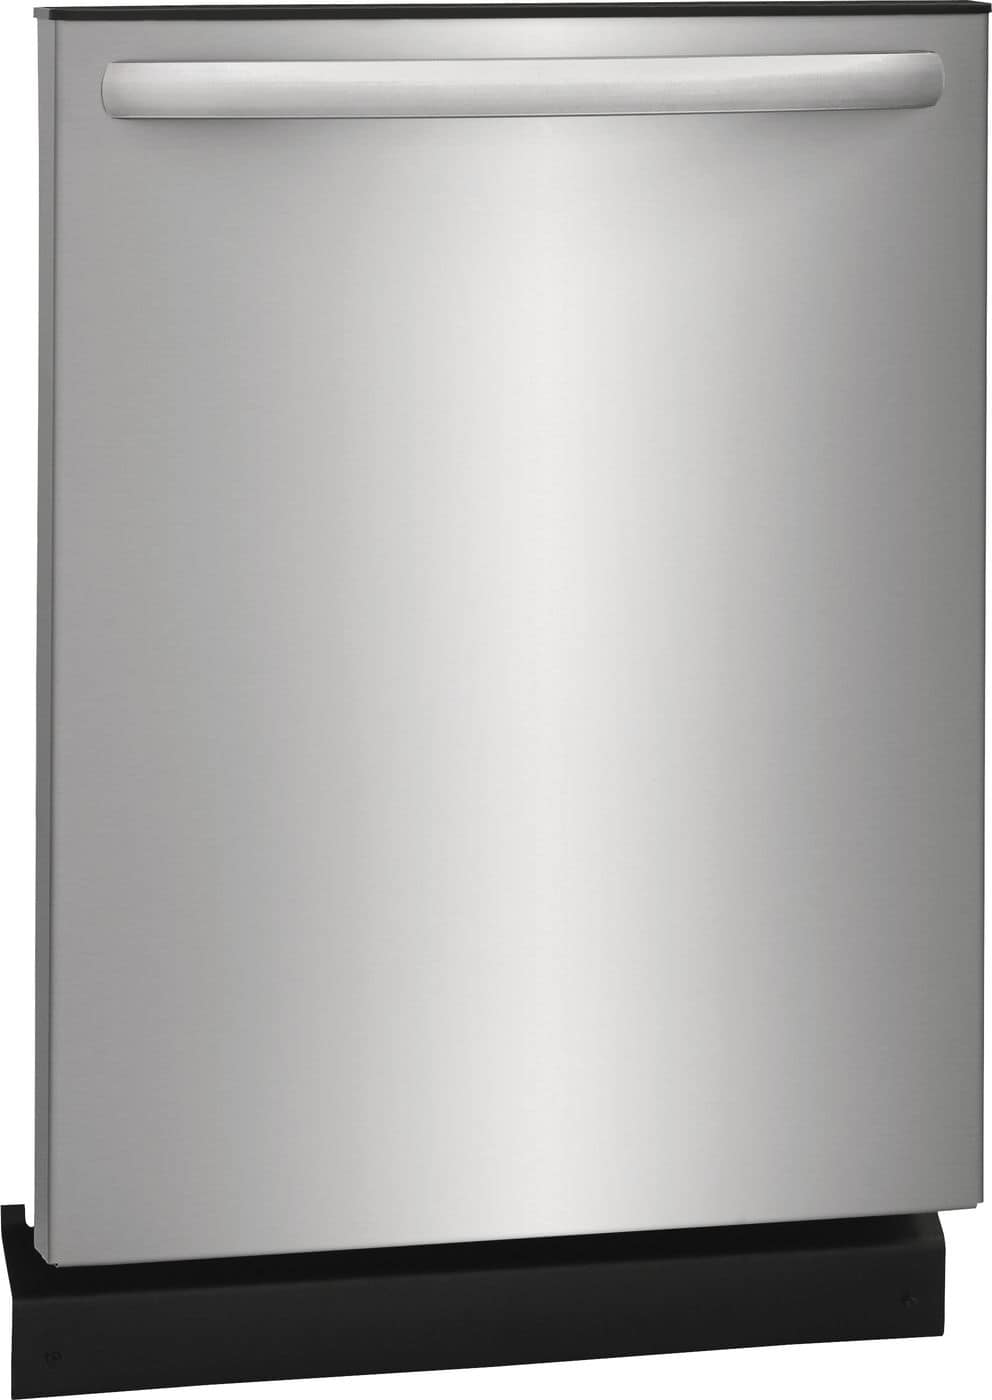 "Model: FFID2426TS | Frigidaire 24"" Built-In Dishwasher"